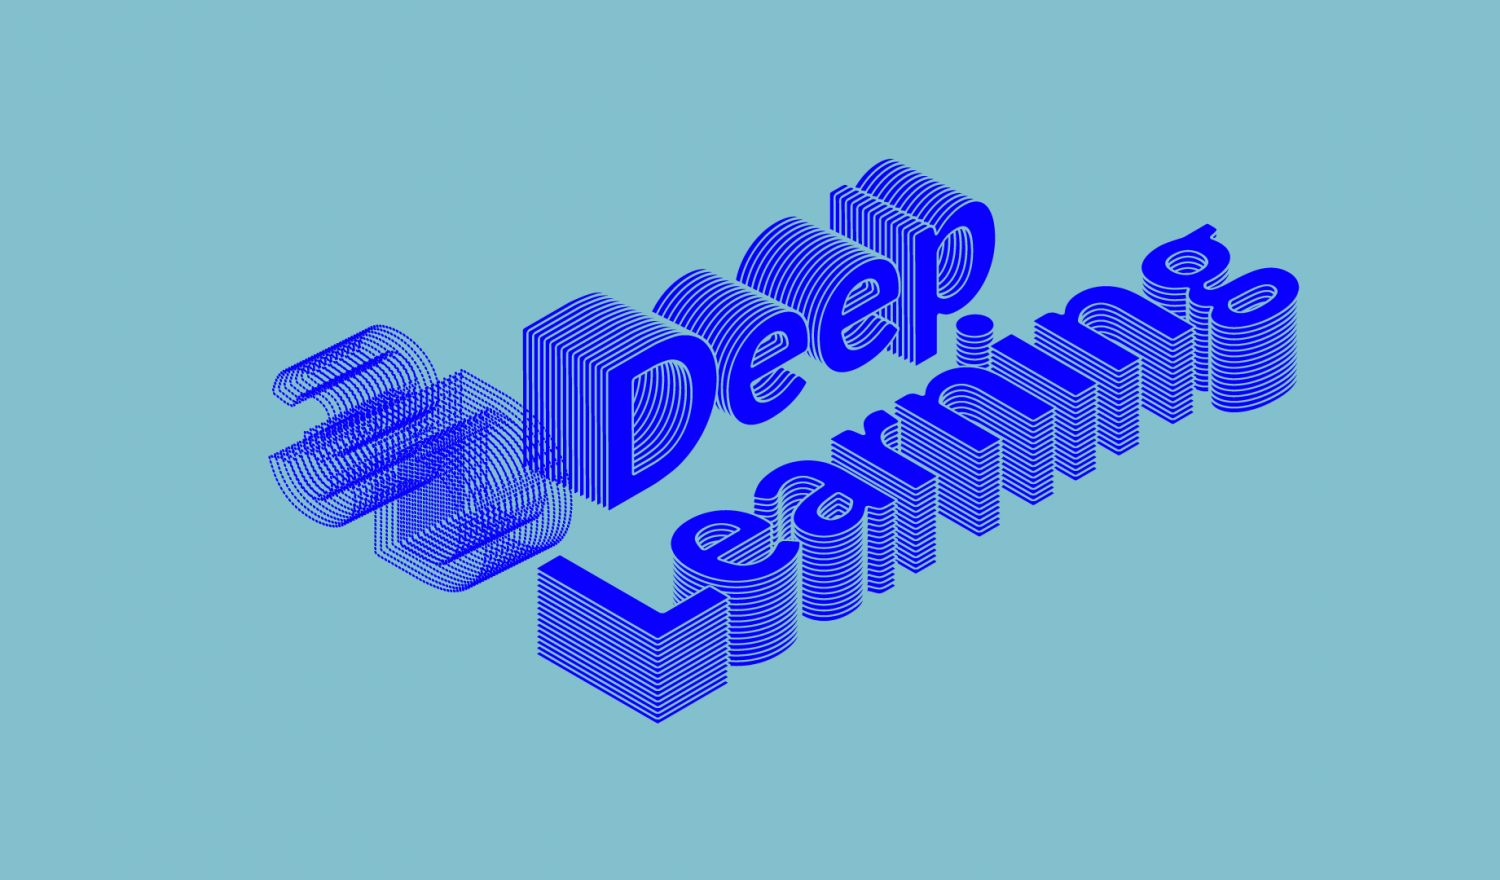 3D Deep. Learning set in a 3D font